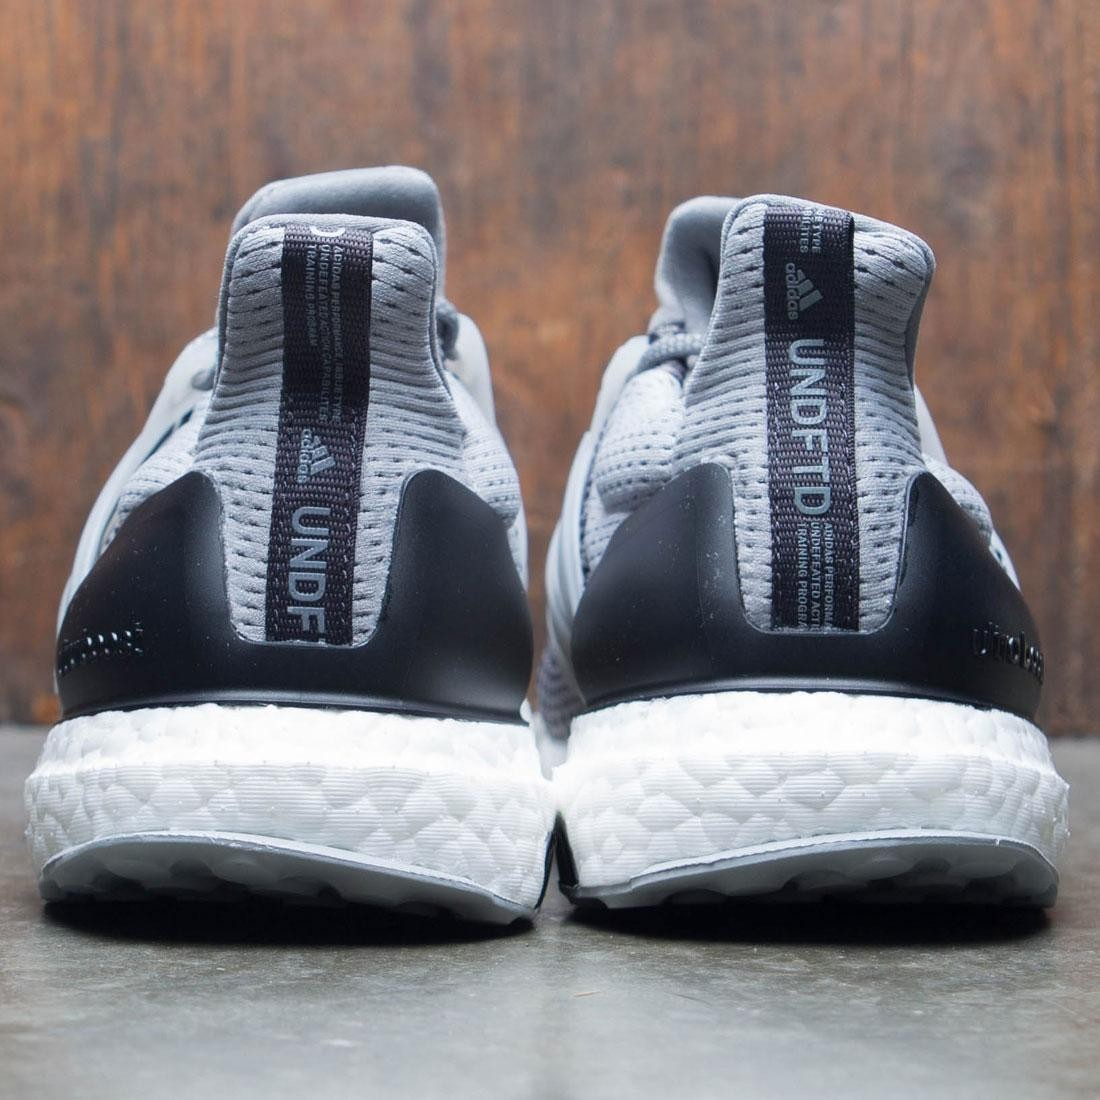 fb2d2885e32 Adidas x Undefeated Men UltraBOOST (gray   shift grey   cinder   utility  black)